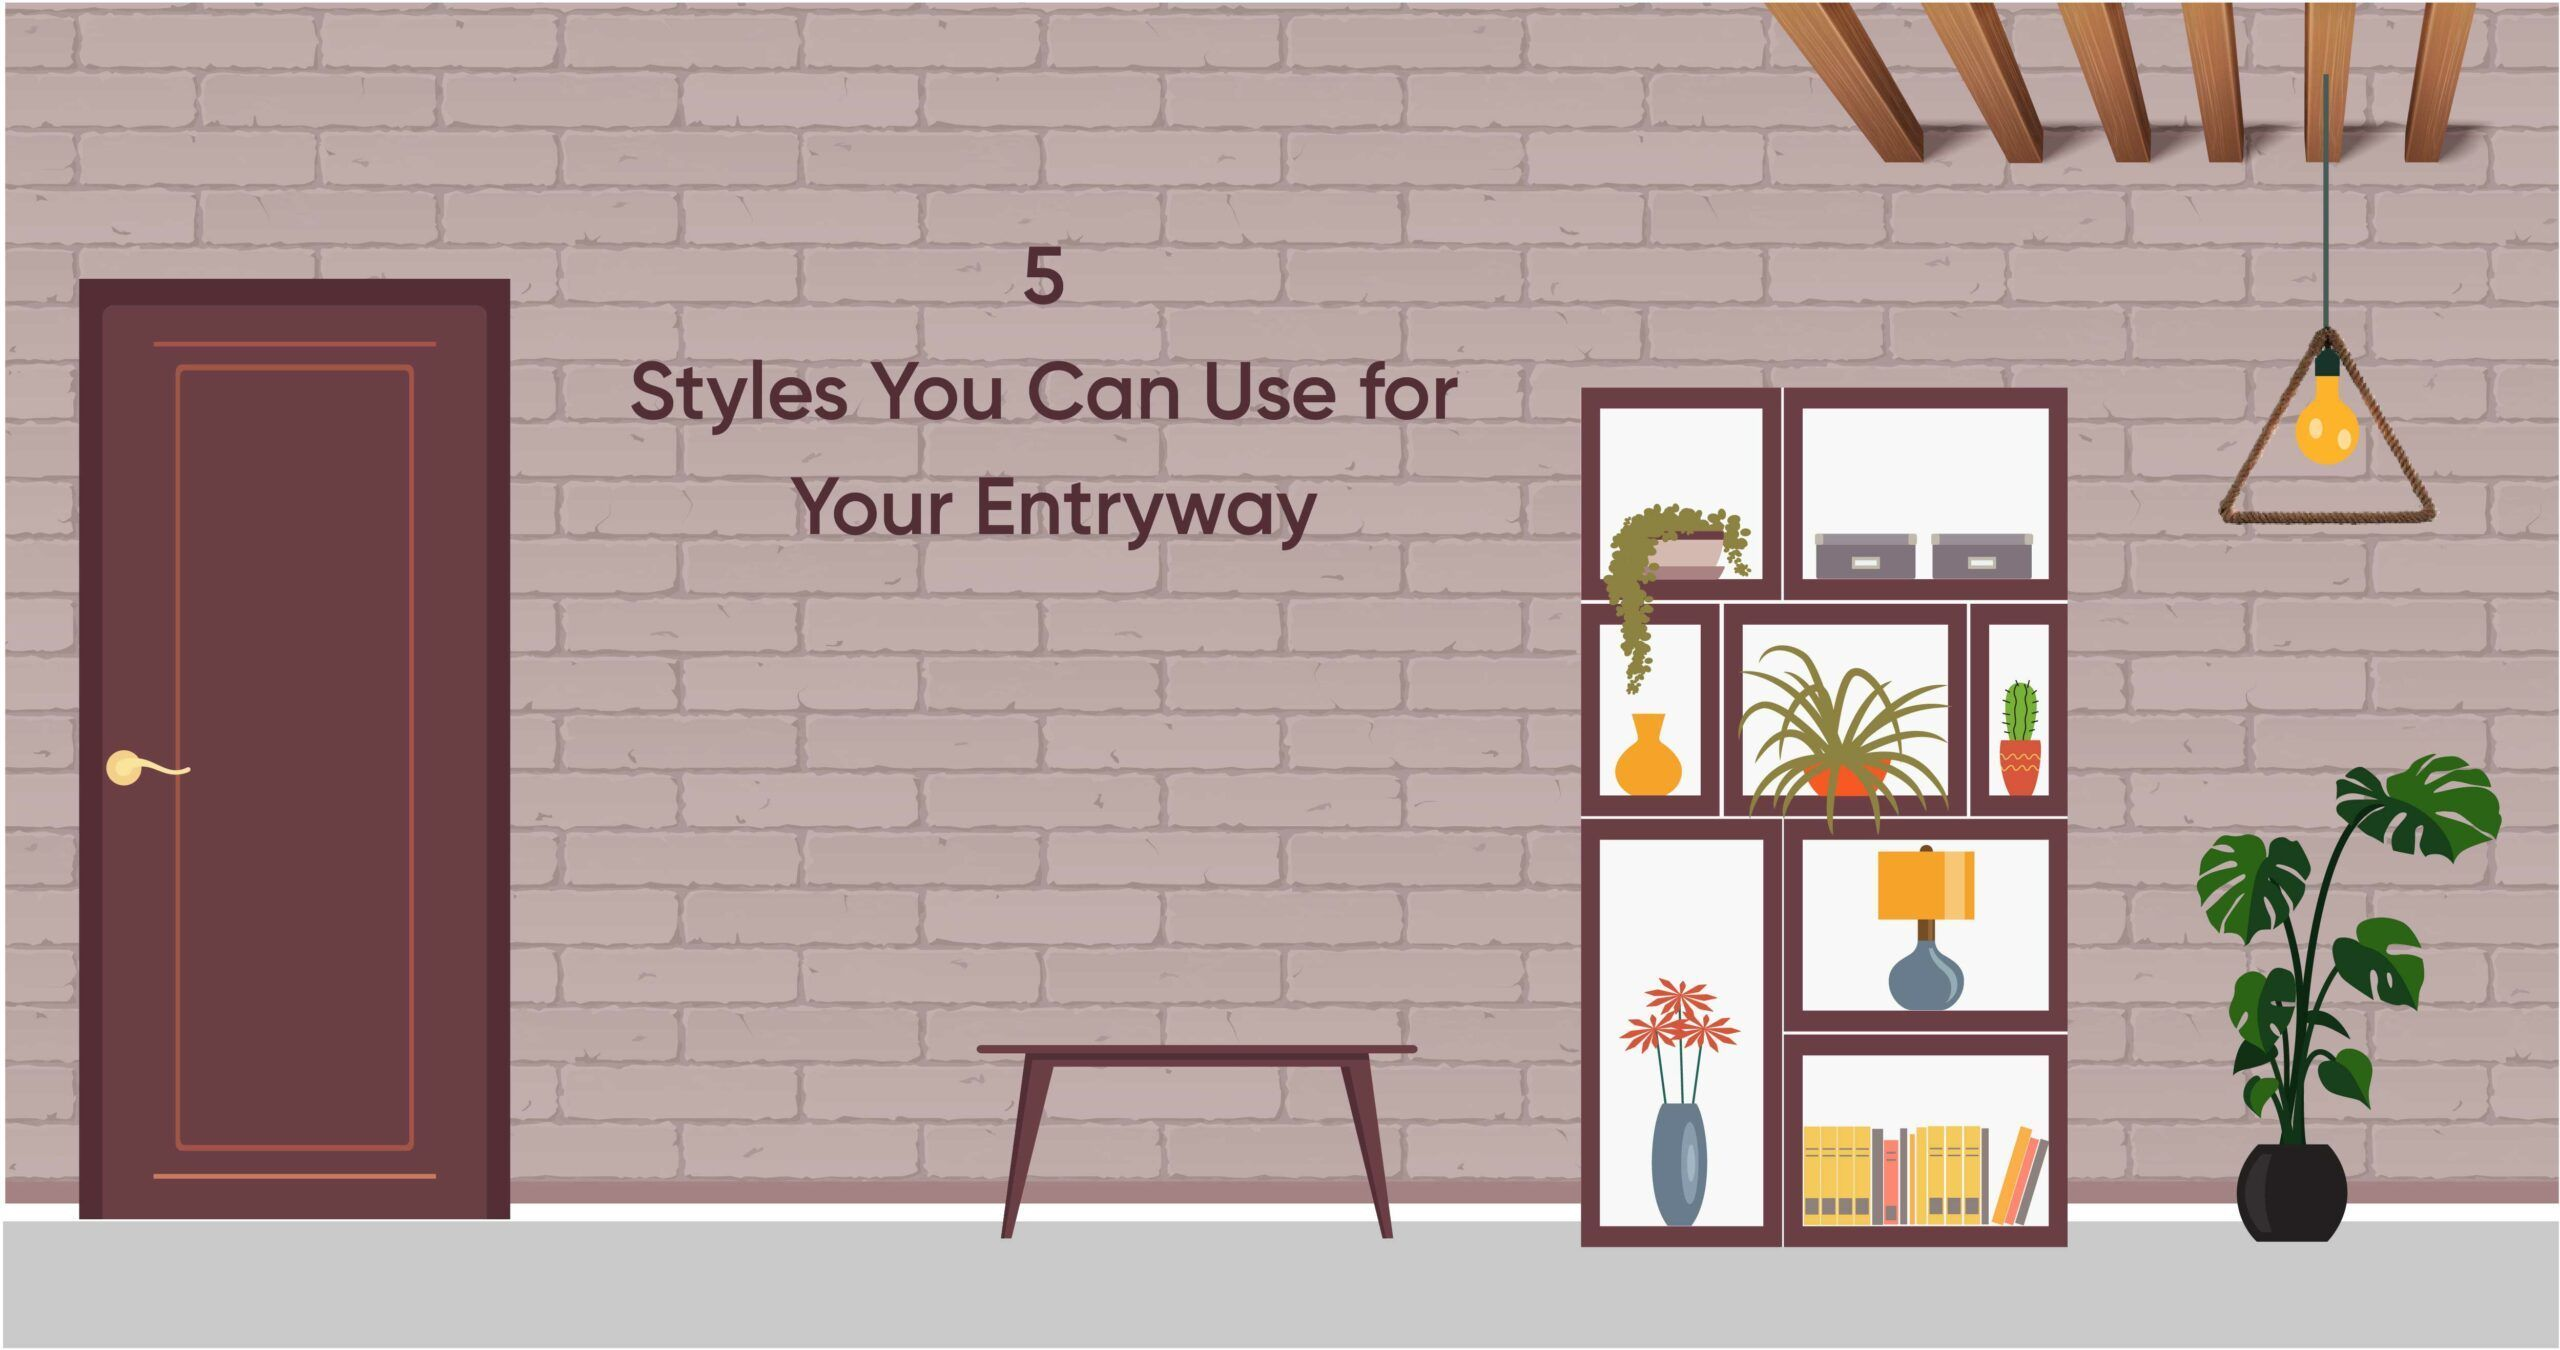 1 Entryway, 5 Iconic Styles; And Your Pick Is?